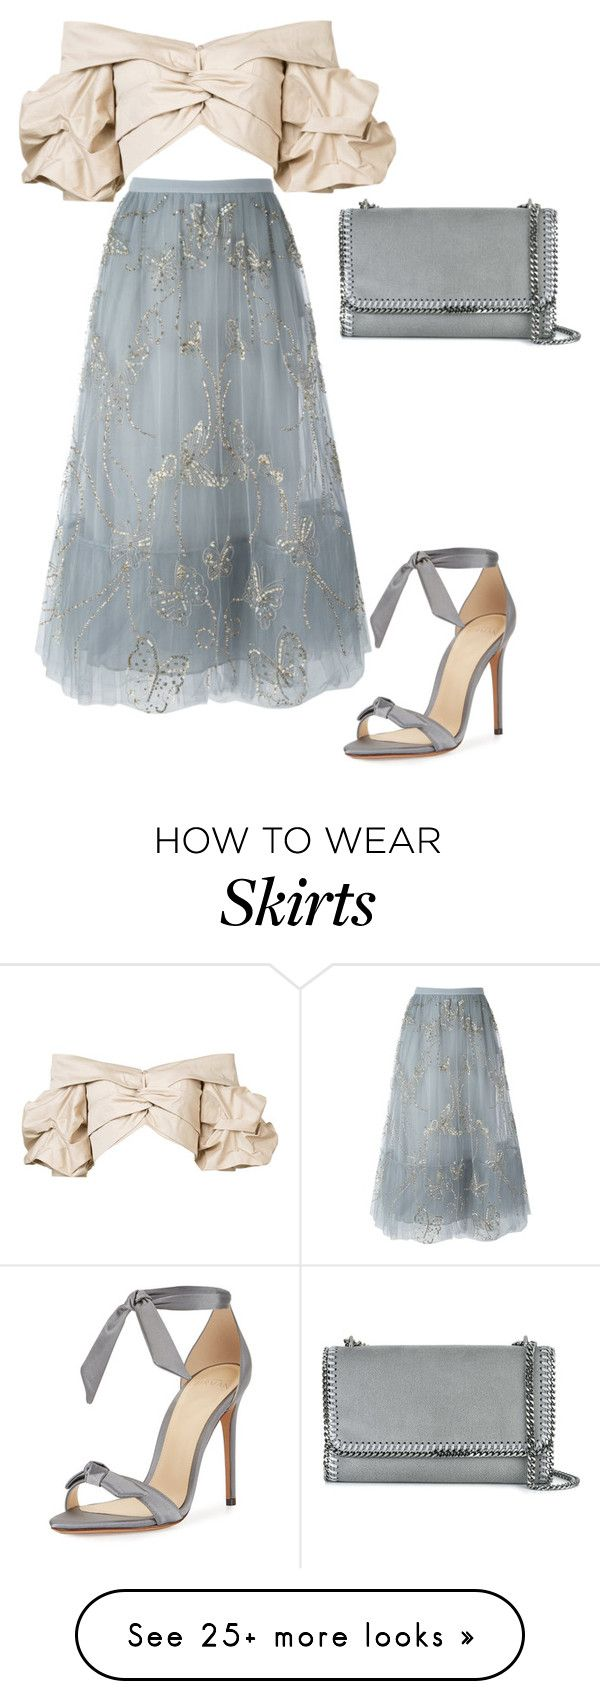 """tulle vibes"" by guccibunny on Polyvore featuring Alexandre Birman, Valentino, Johanna Ortiz and STELLA McCARTNEY"